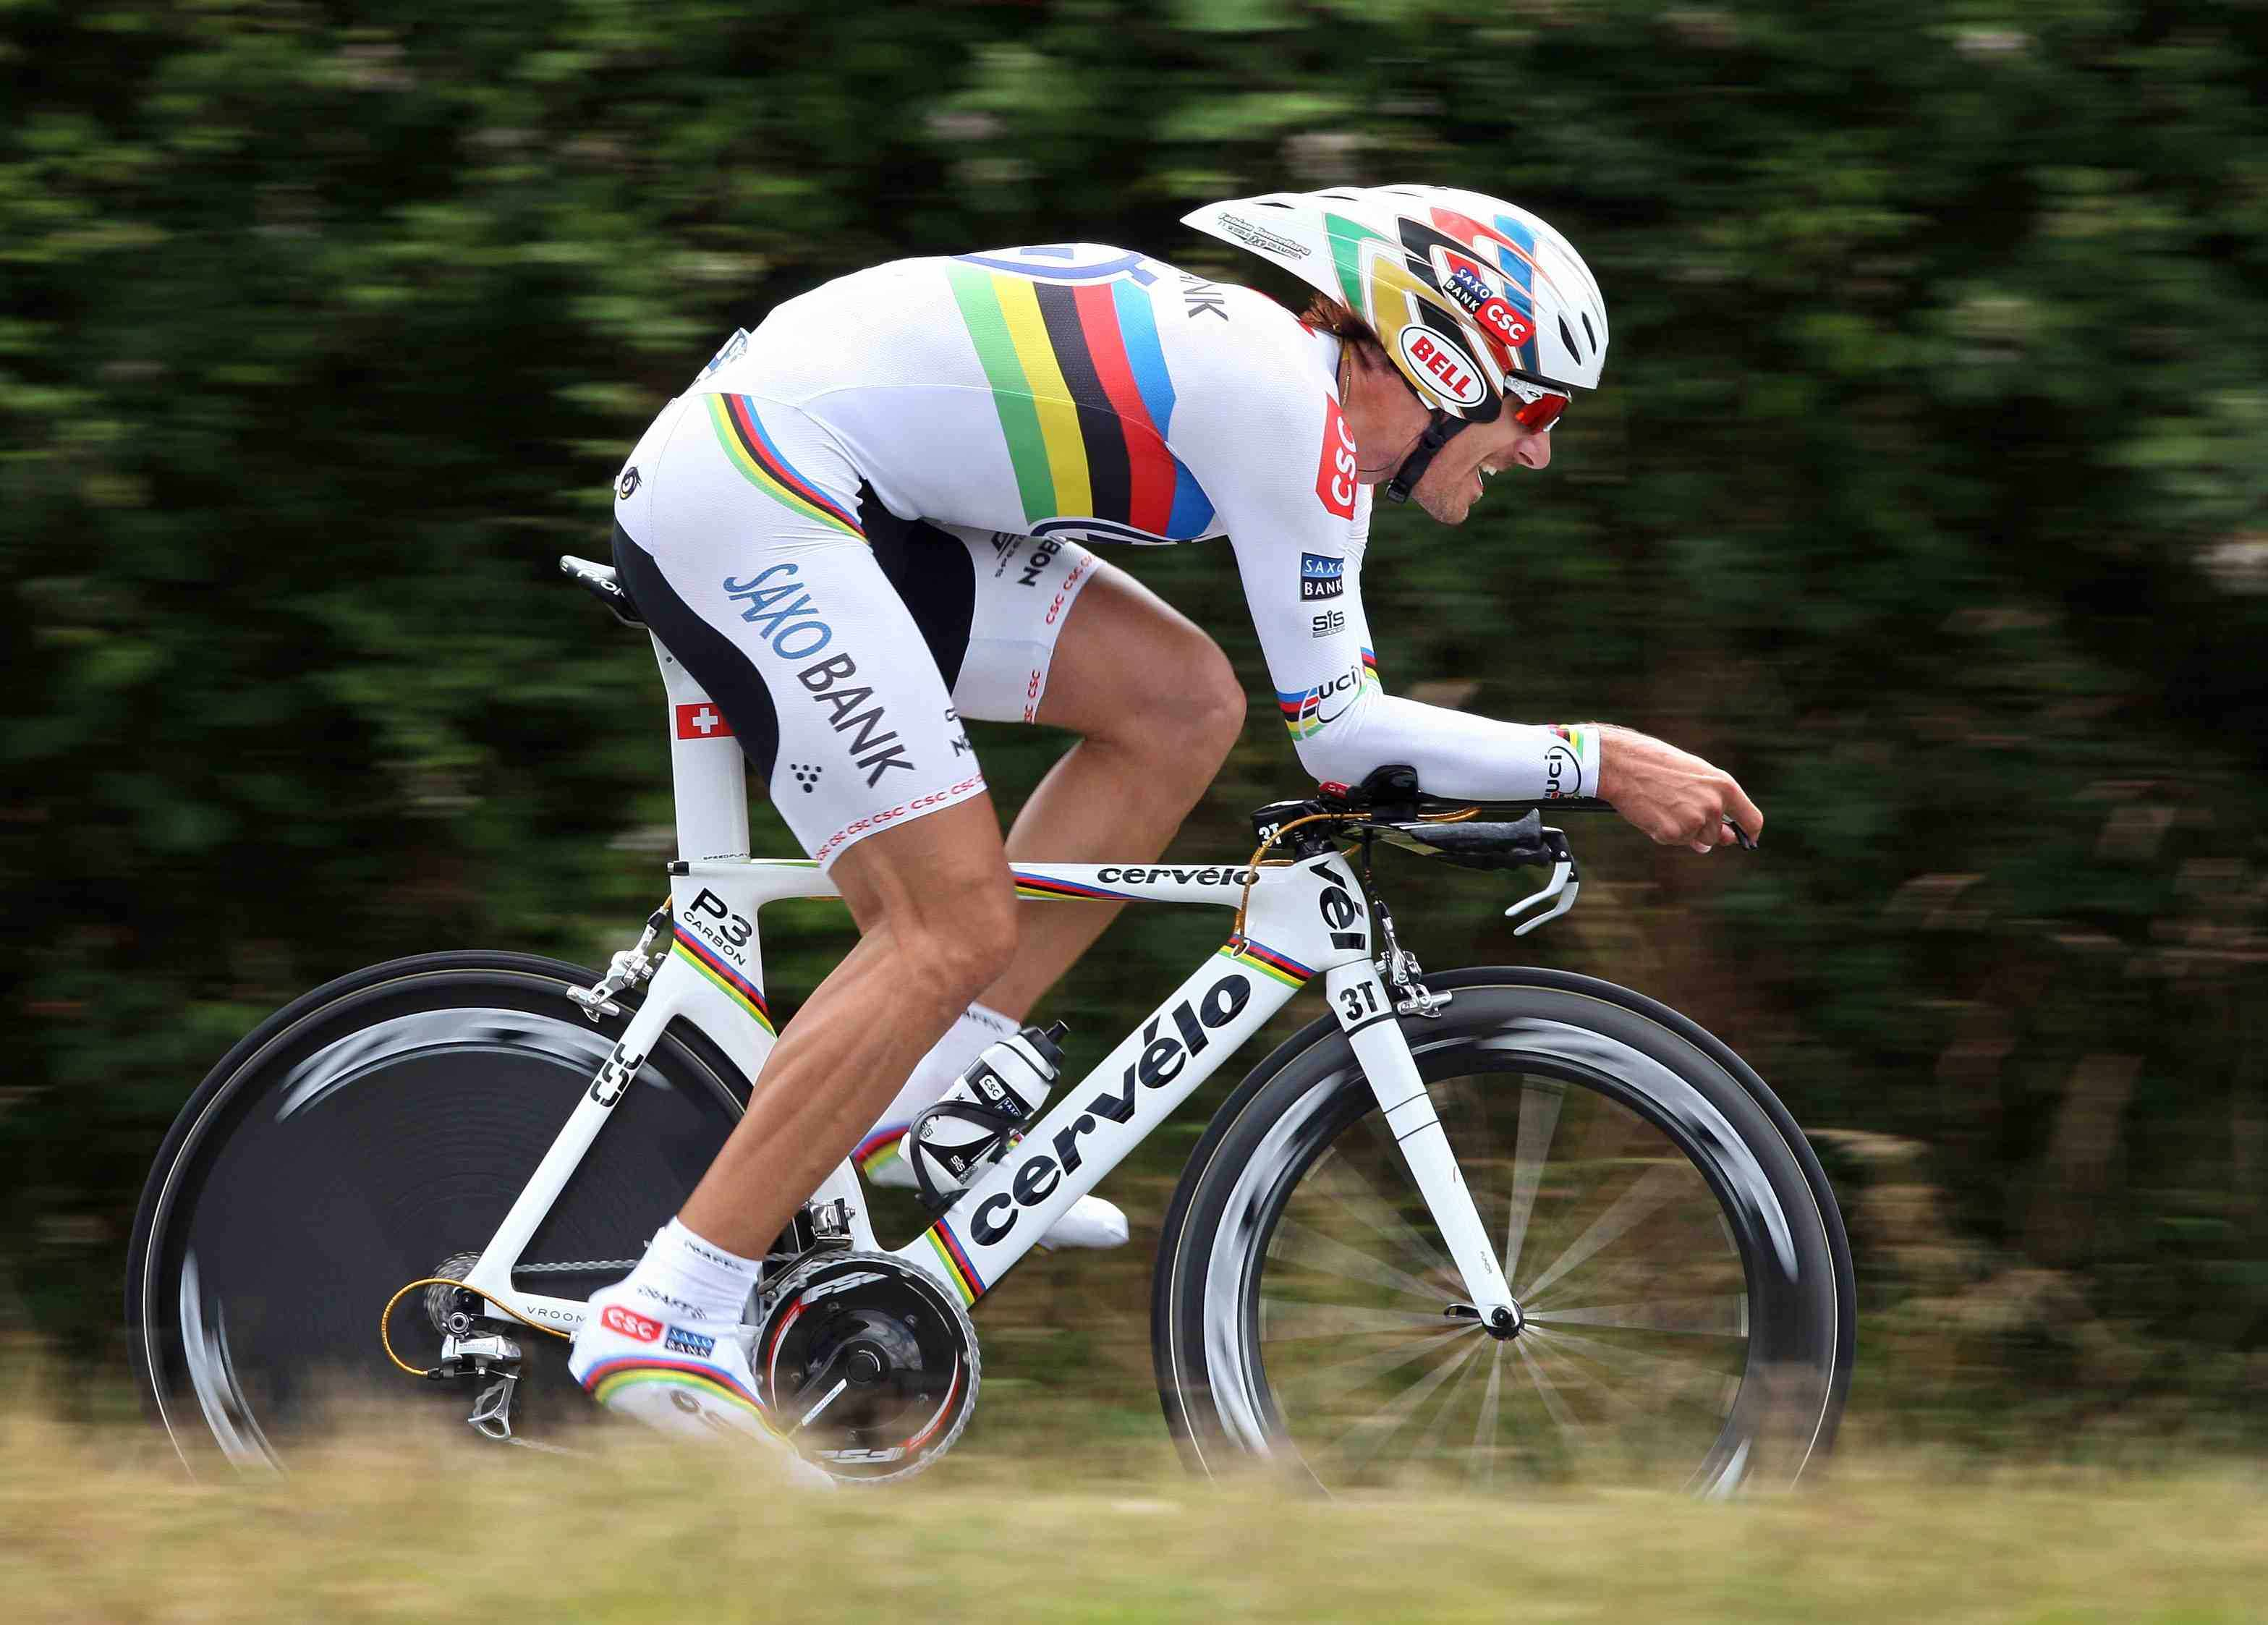 Reigning world time trial champ Fabian Cancellara finished fifth in France today.